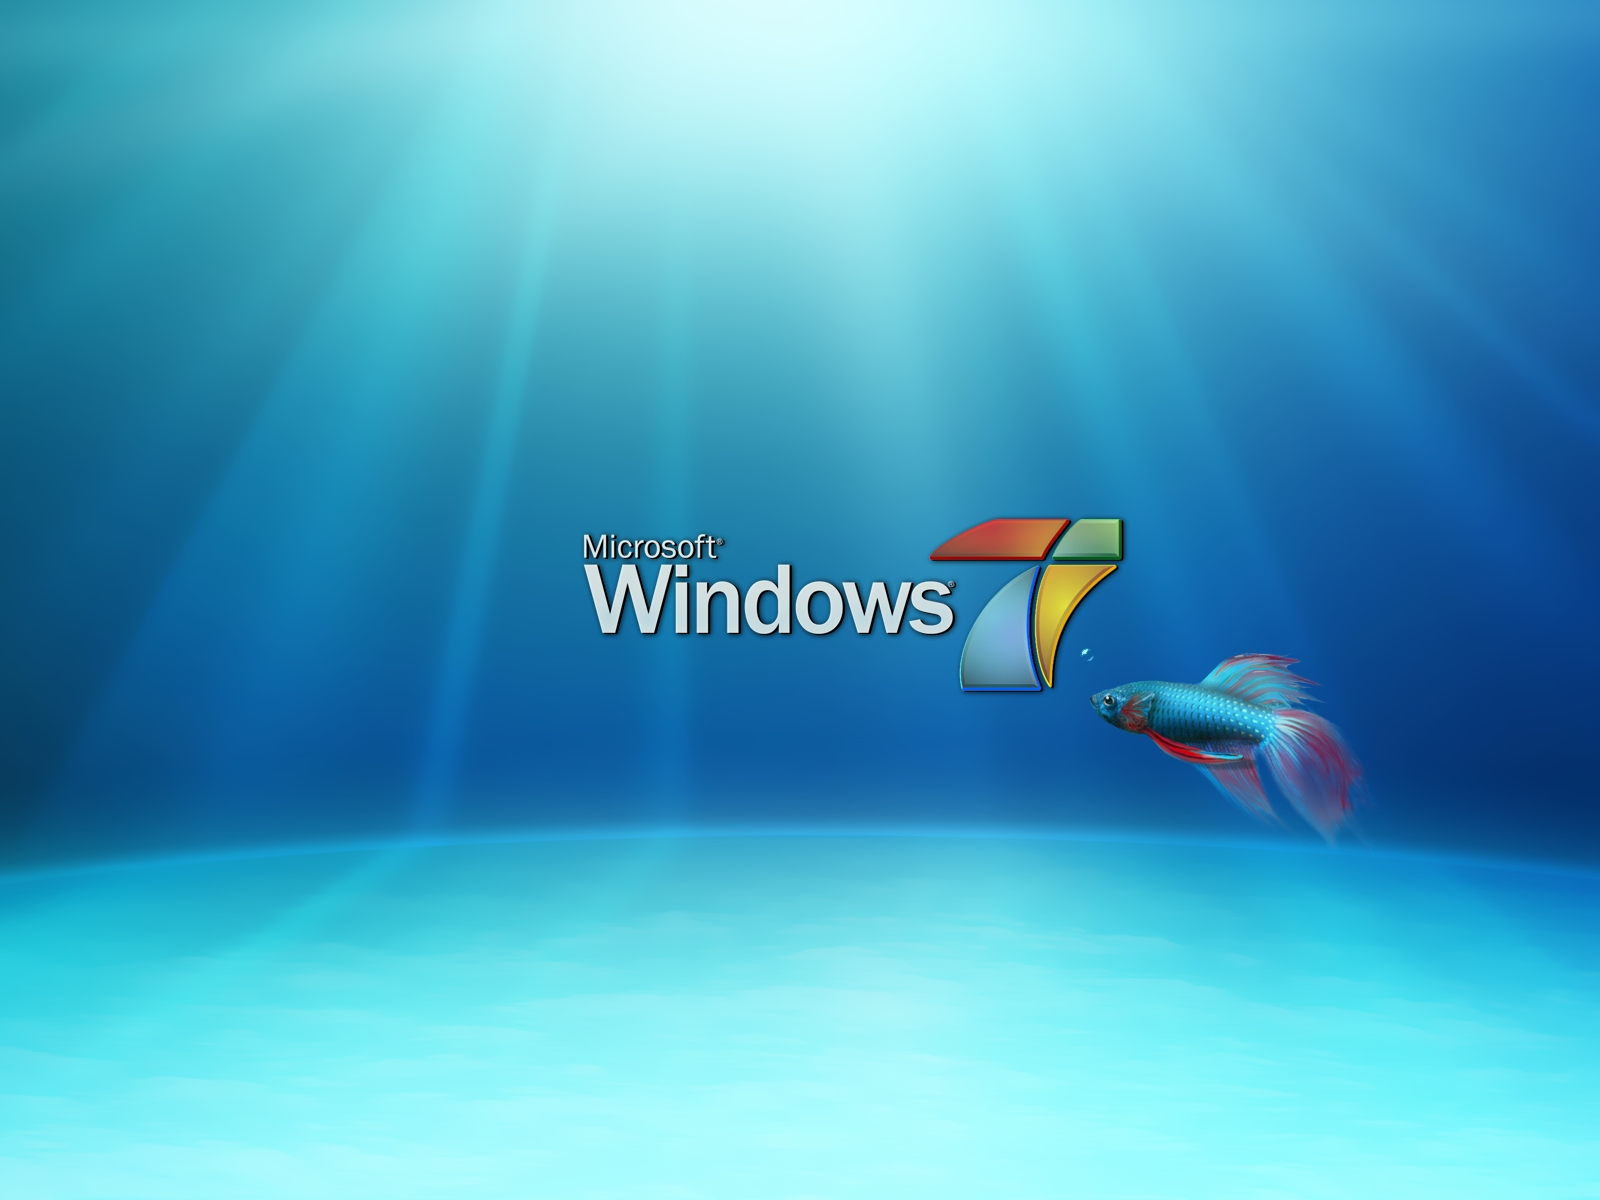 http://4.bp.blogspot.com/-AUtkexM0euM/TkenyTsLJxI/AAAAAAAADP8/BZVsKdPsyH8/s1600/Windows7-new-wallpaper-fish.jpg